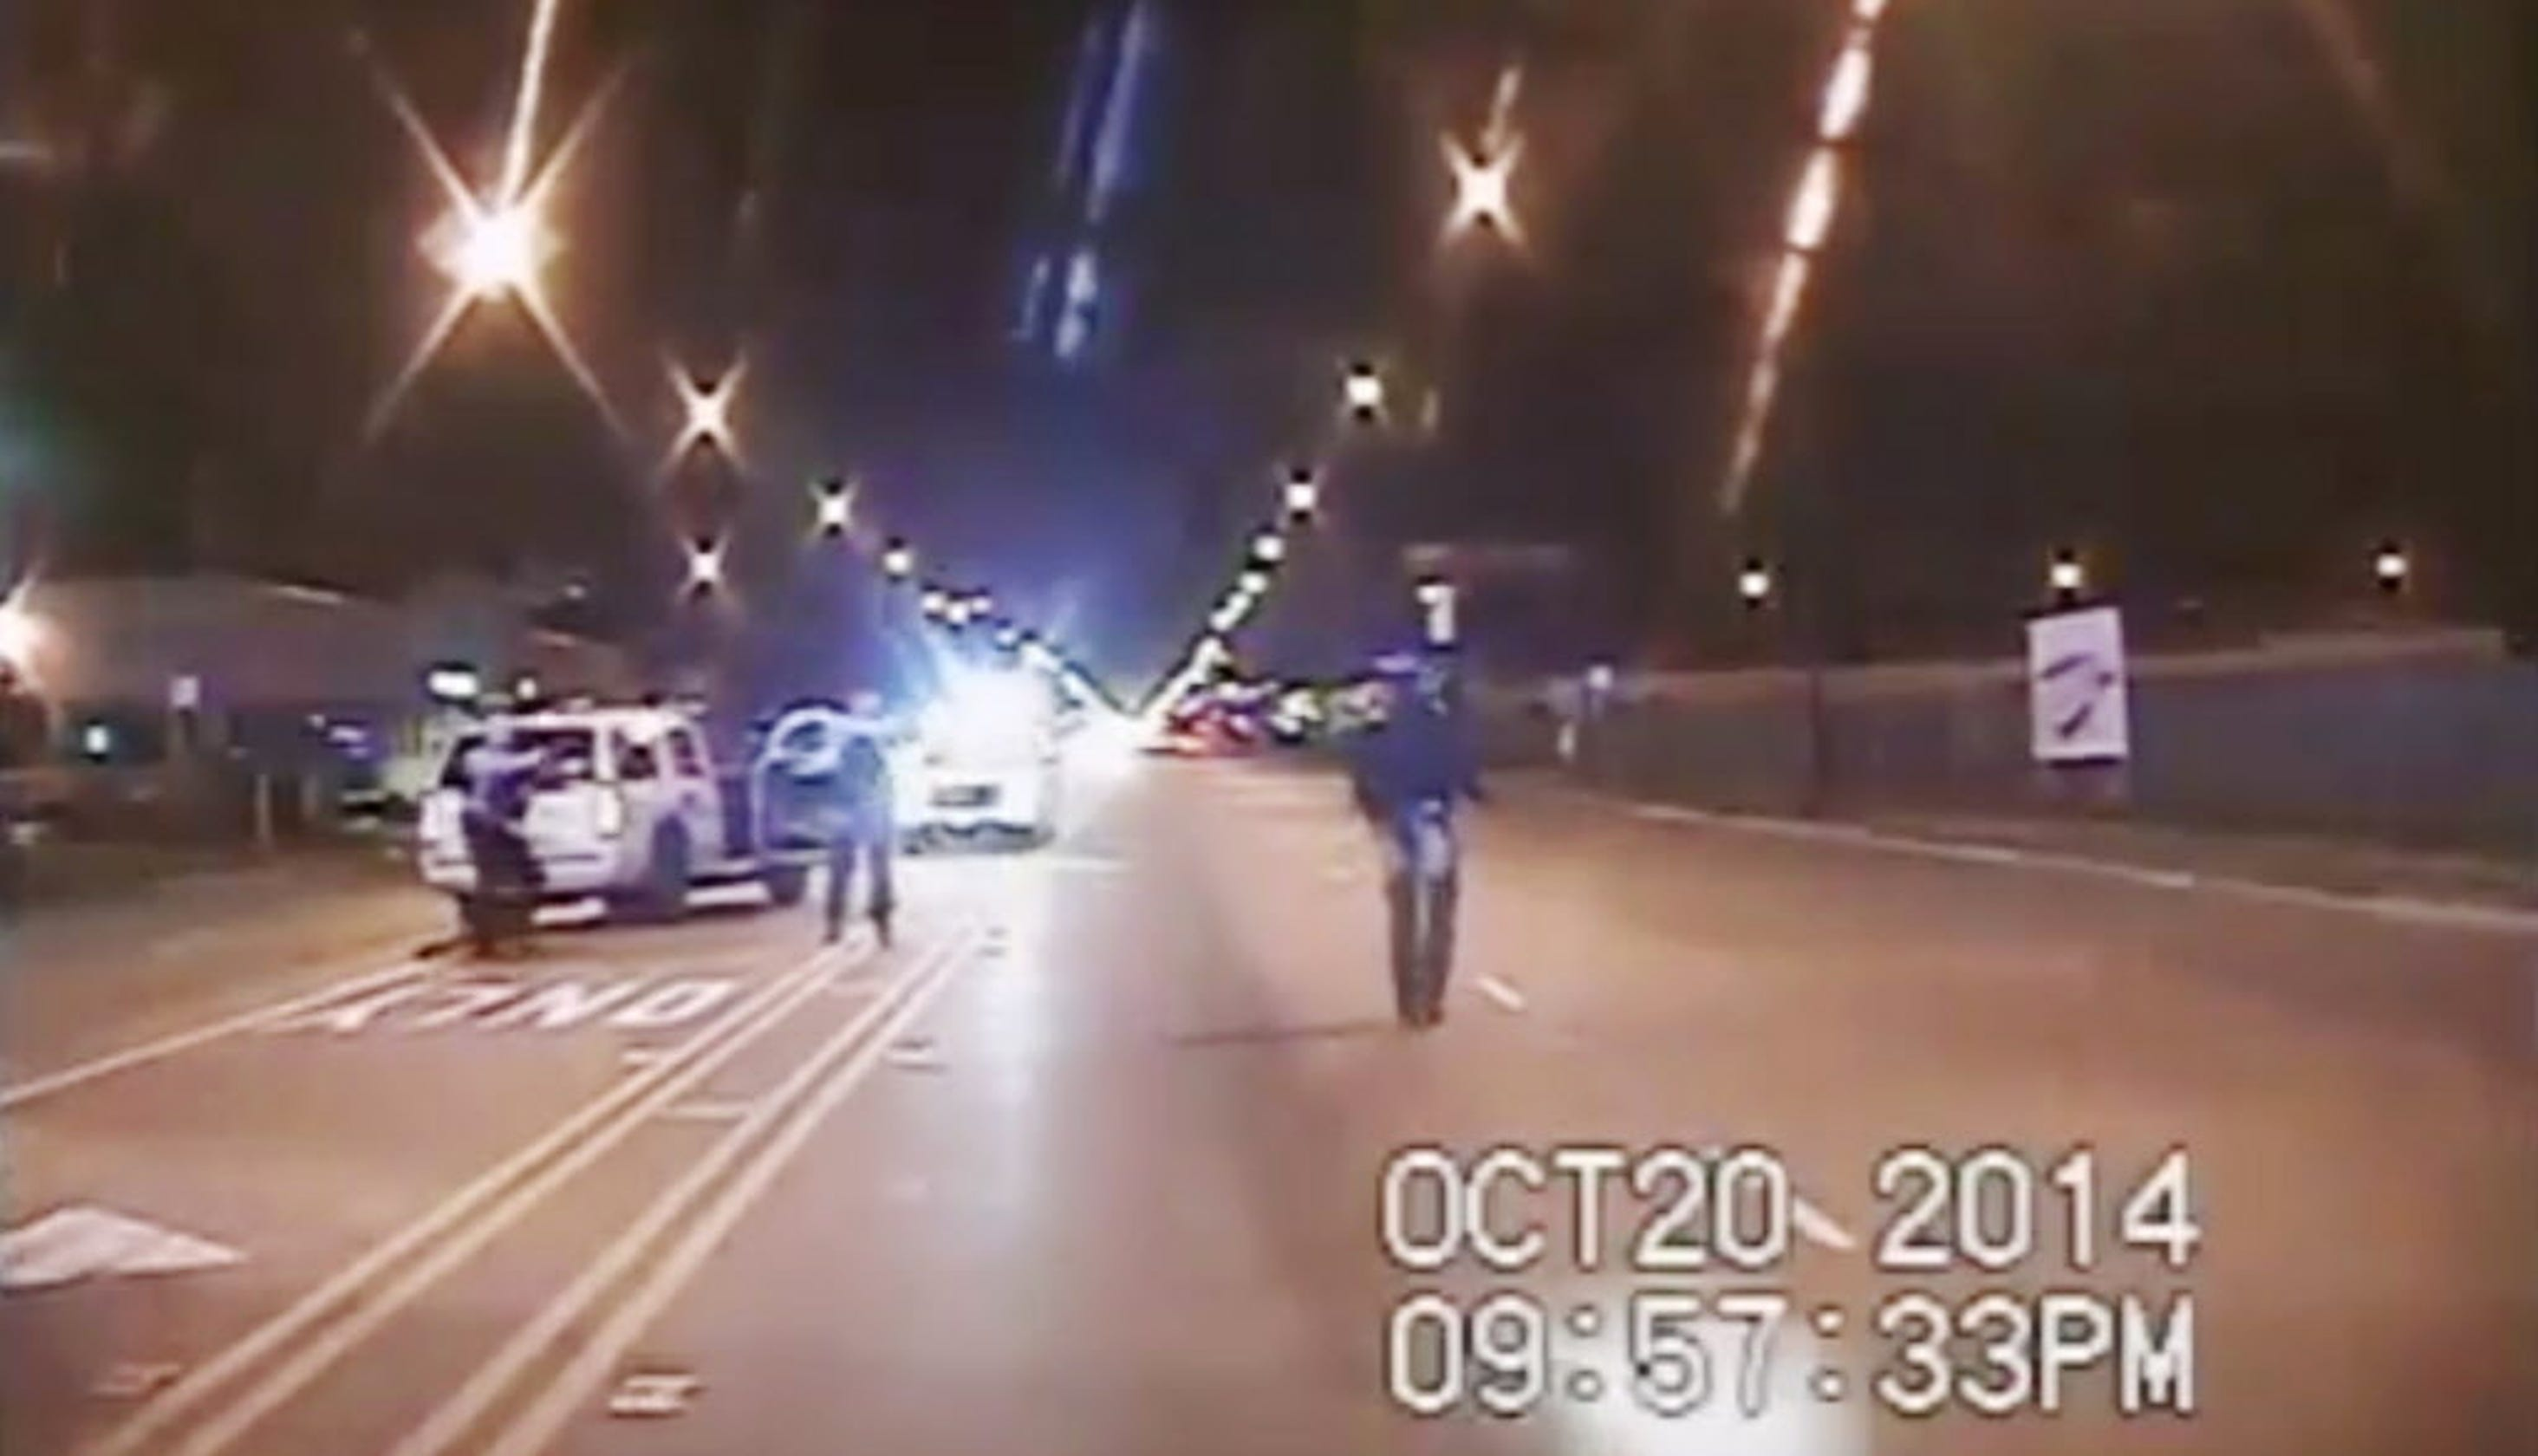 Judge to announce verdict for 3 Chicago cops in alleged Laquan McDonald coverup trial